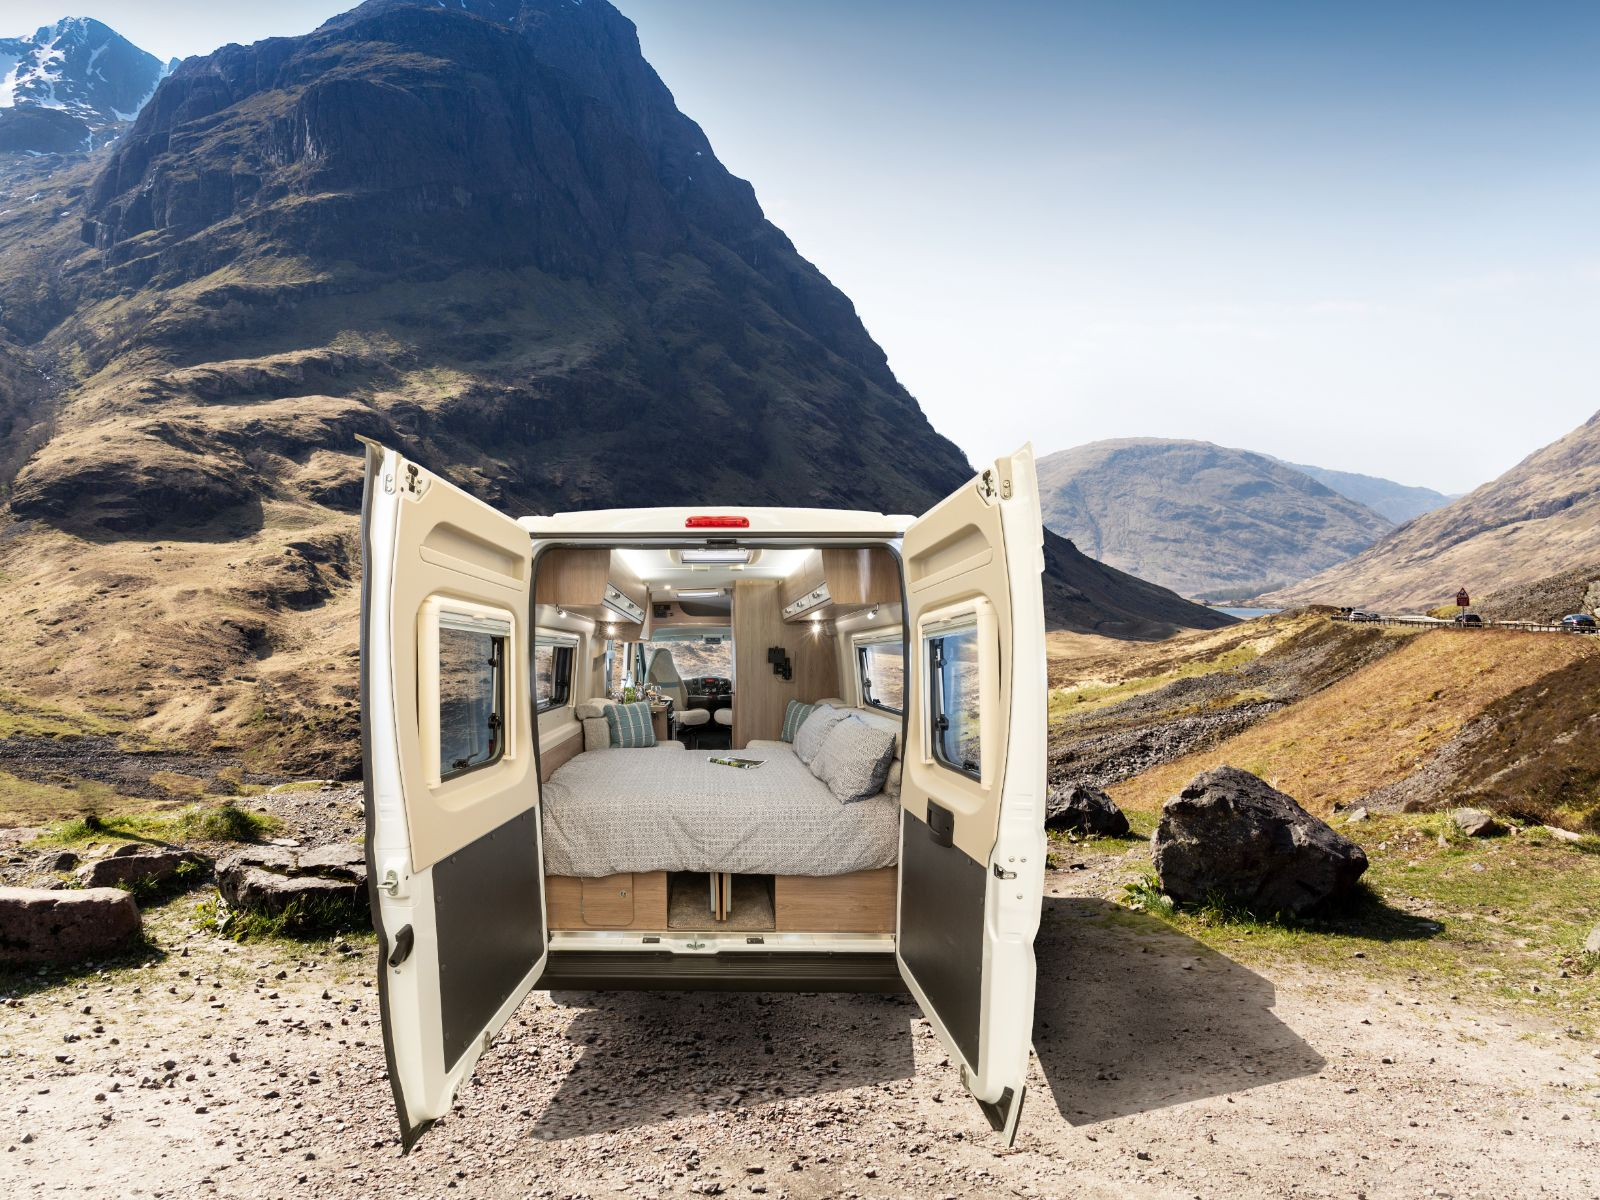 Rear view of the Avantgarde CV20 with backdoors open revealing the bedroom layout with a mountain view backdrop'